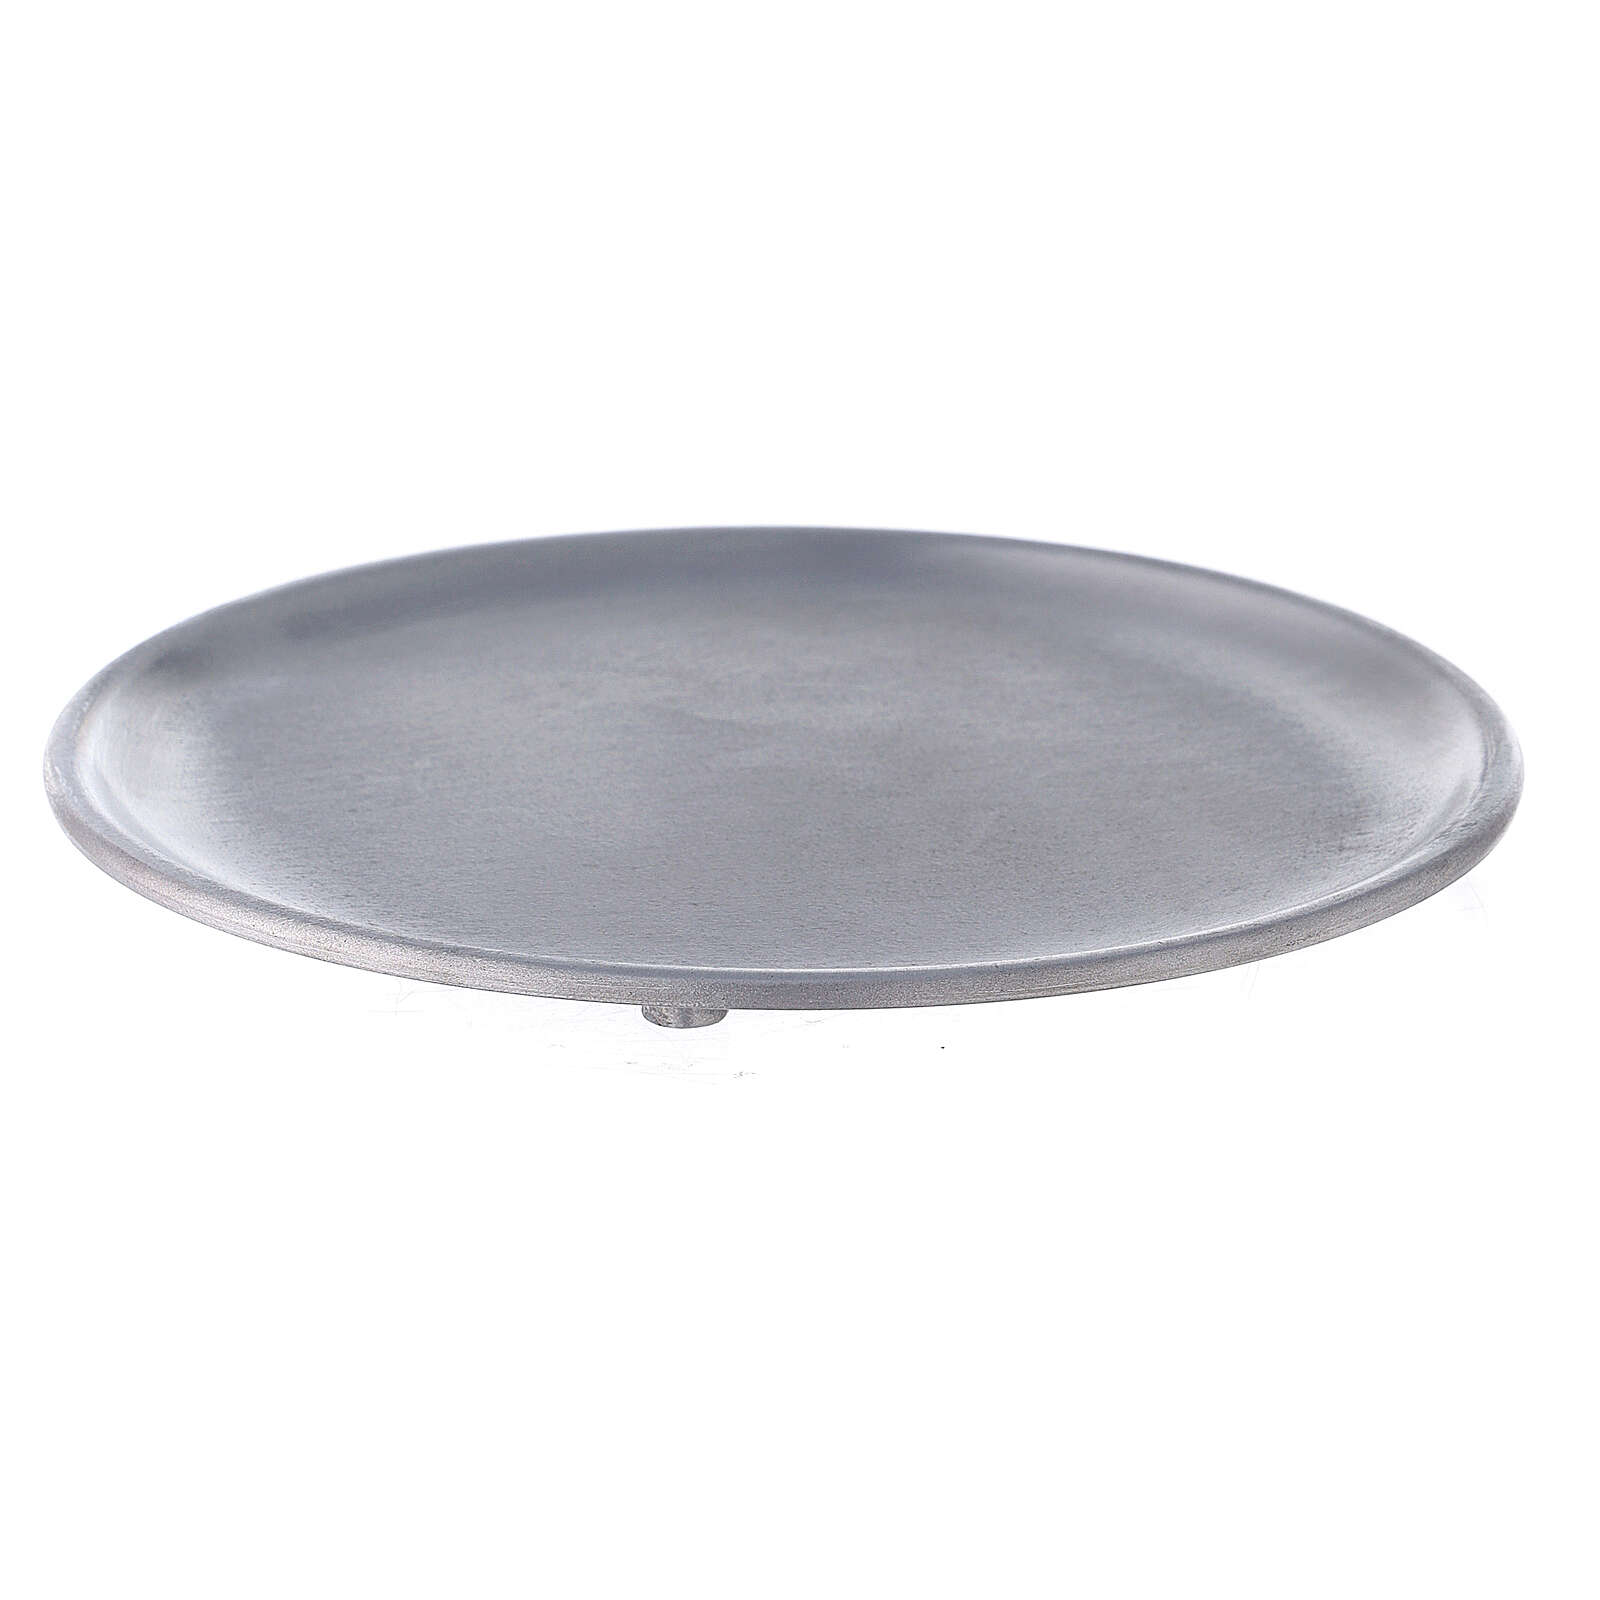 Aluminium candle holder plate with satin finish 5 1/2 in 3